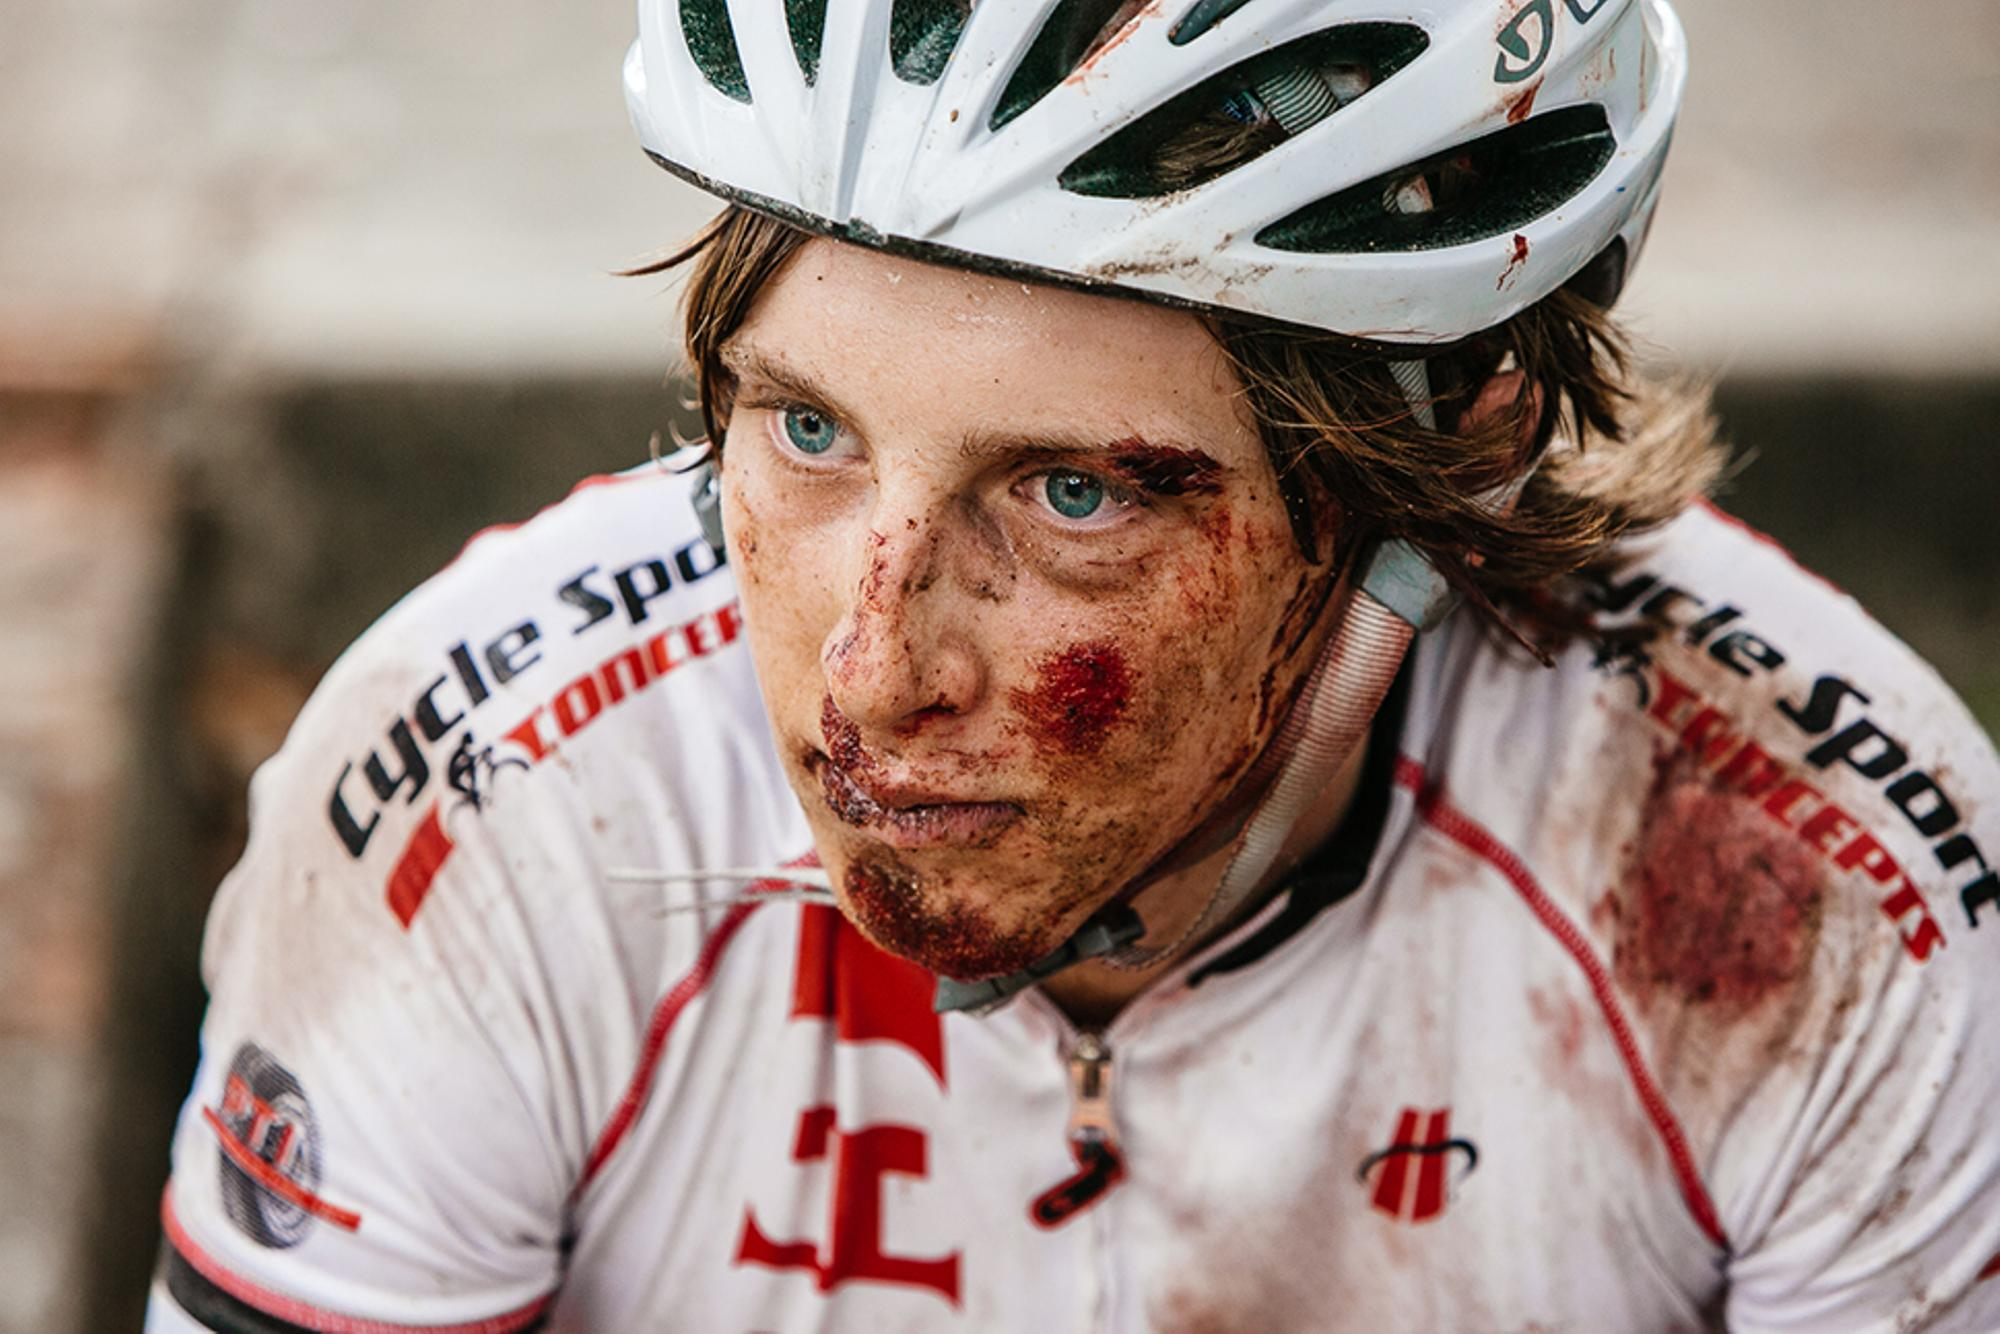 Mile 30, this guy slides out in gravel, cuts his brow, scrapes everything and finishes the 105 mile race. HTFU indeed...